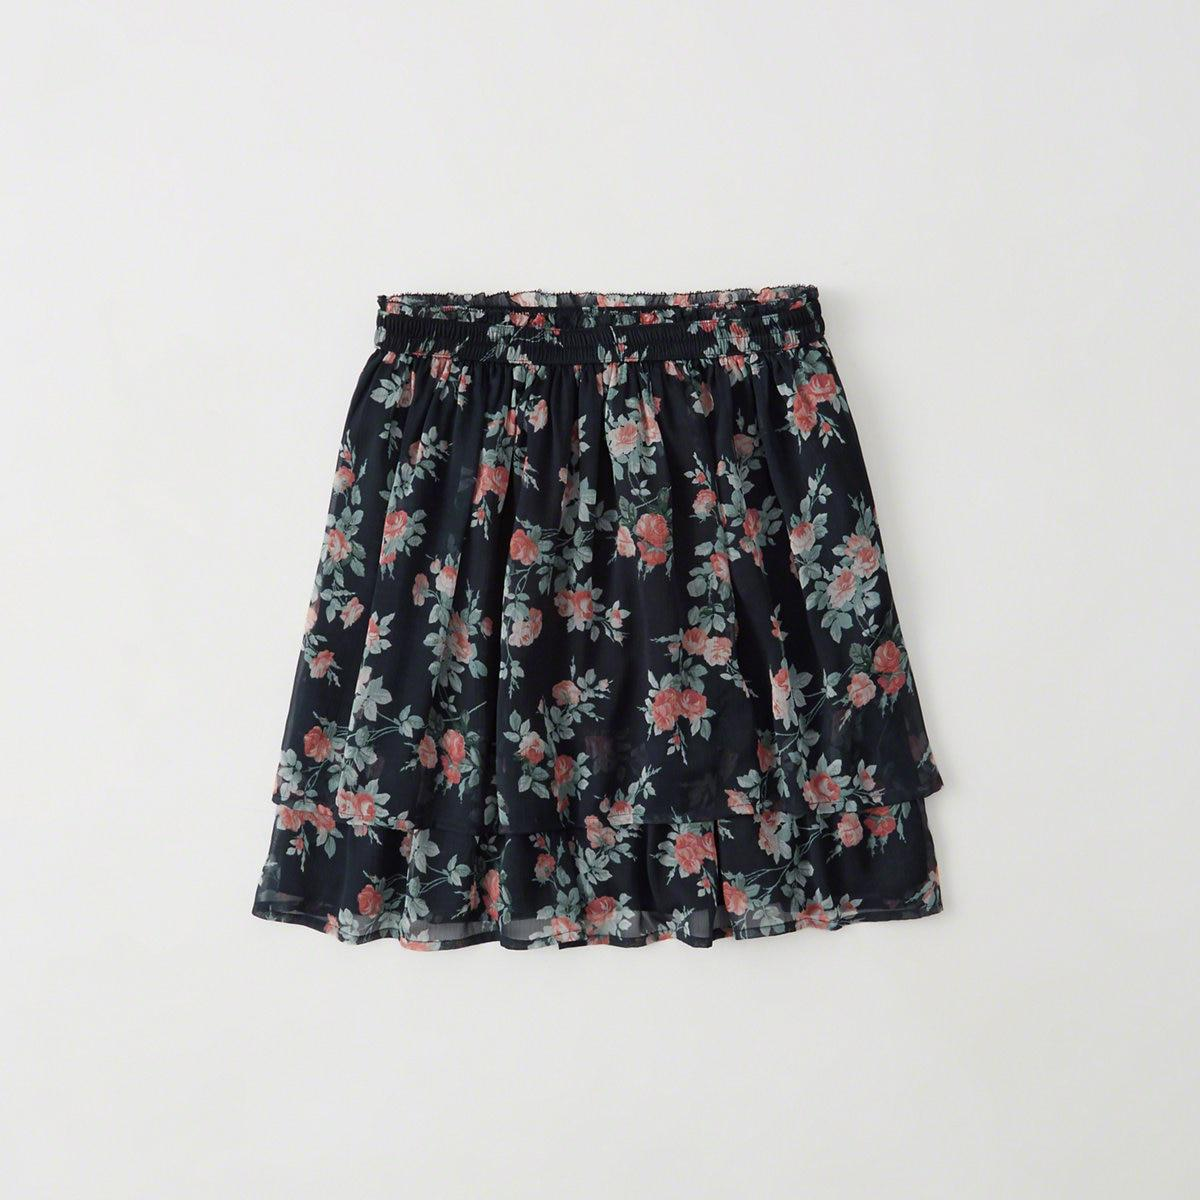 Skirt Floral abercrombie forecasting dress for on every day in 2019